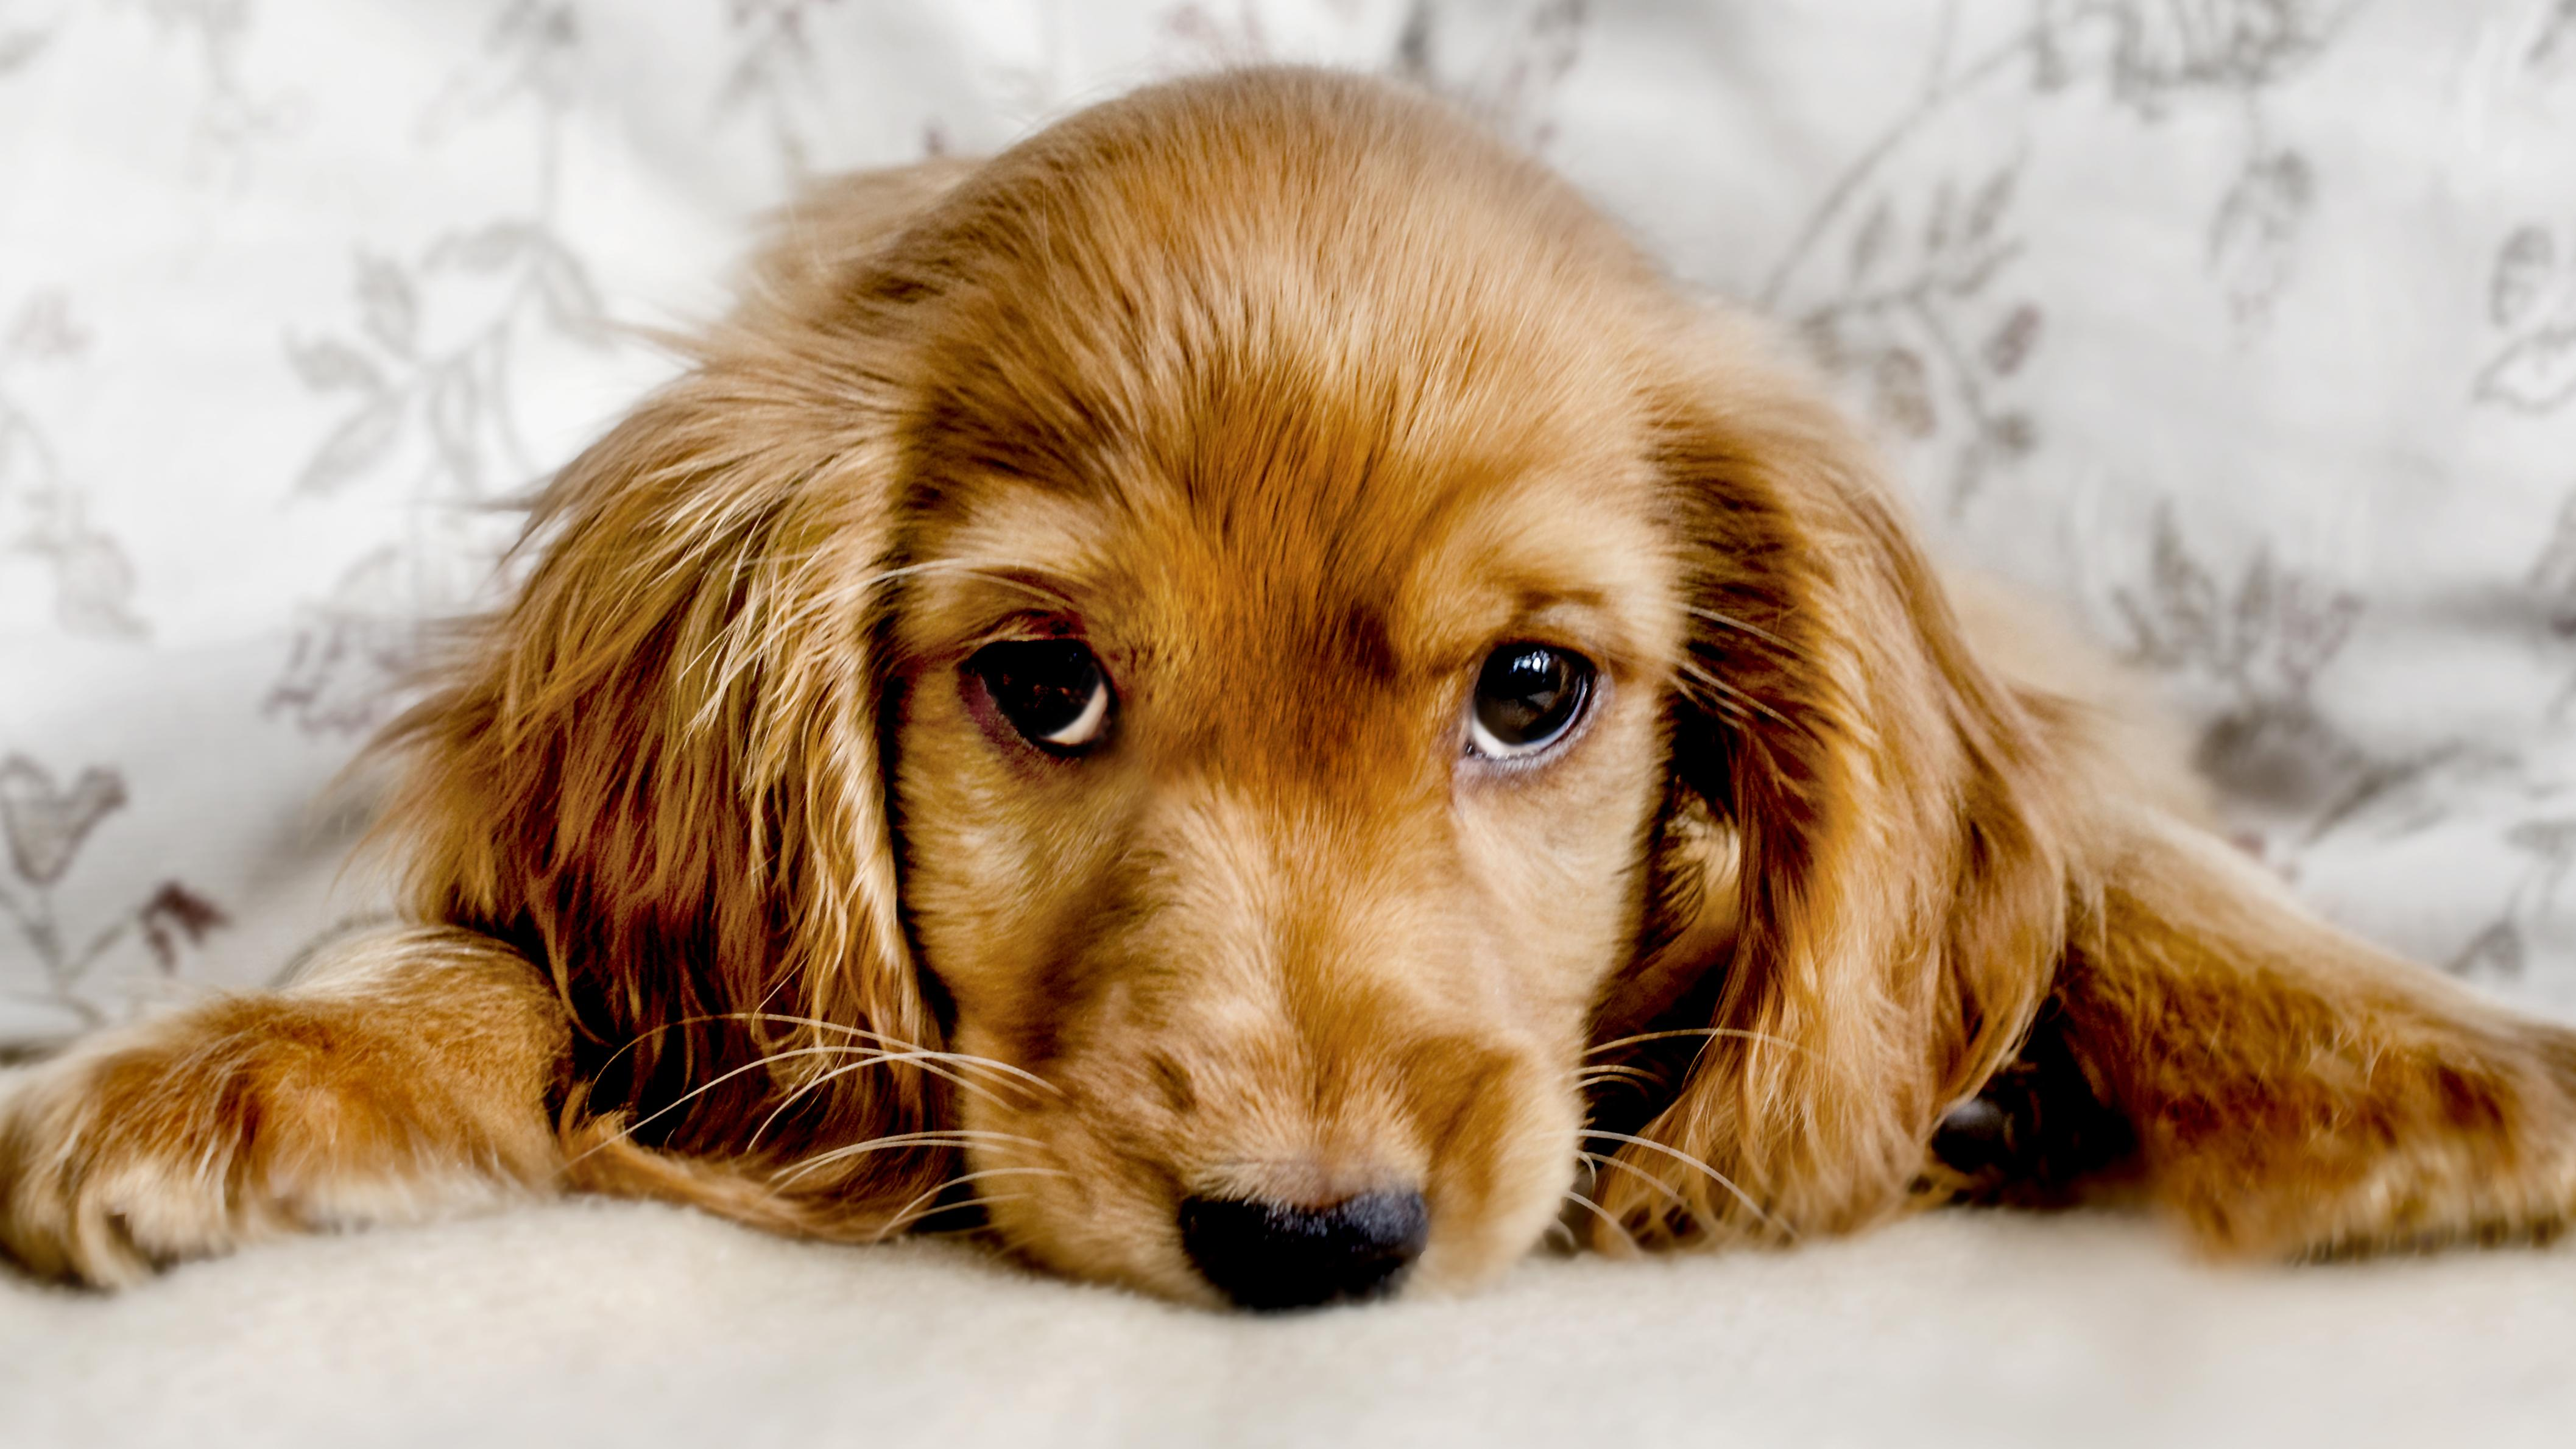 Dogs evolved the muscle that makes puppy dog eyes